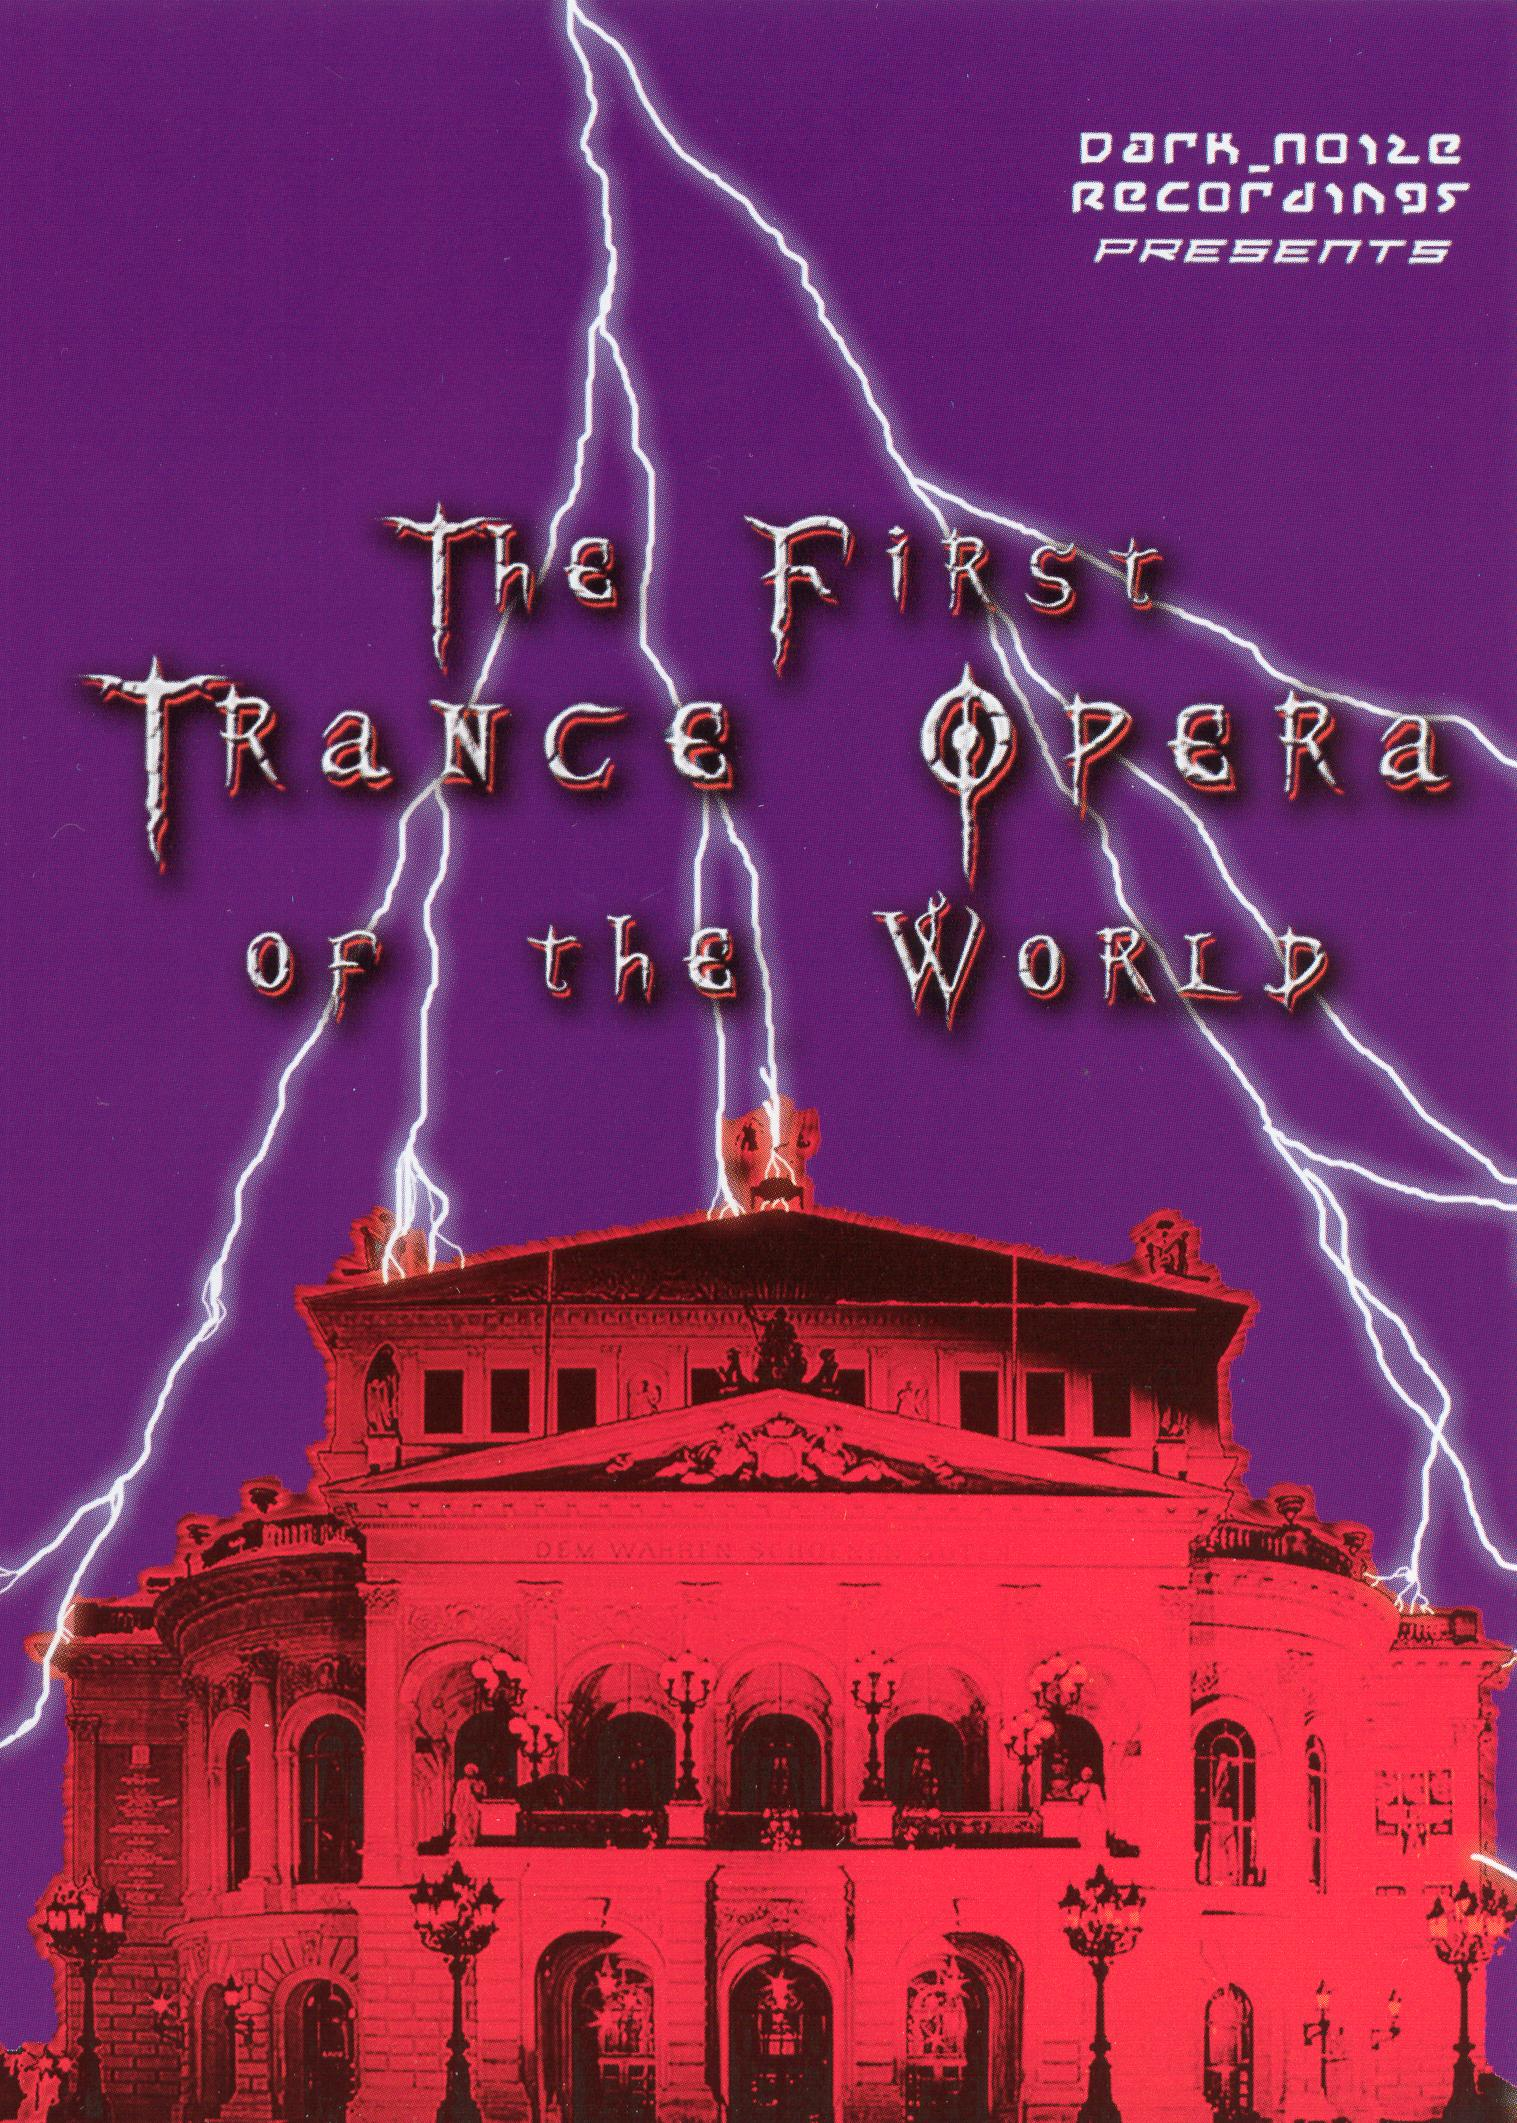 Trance Vision: The First Trance Opera of the World